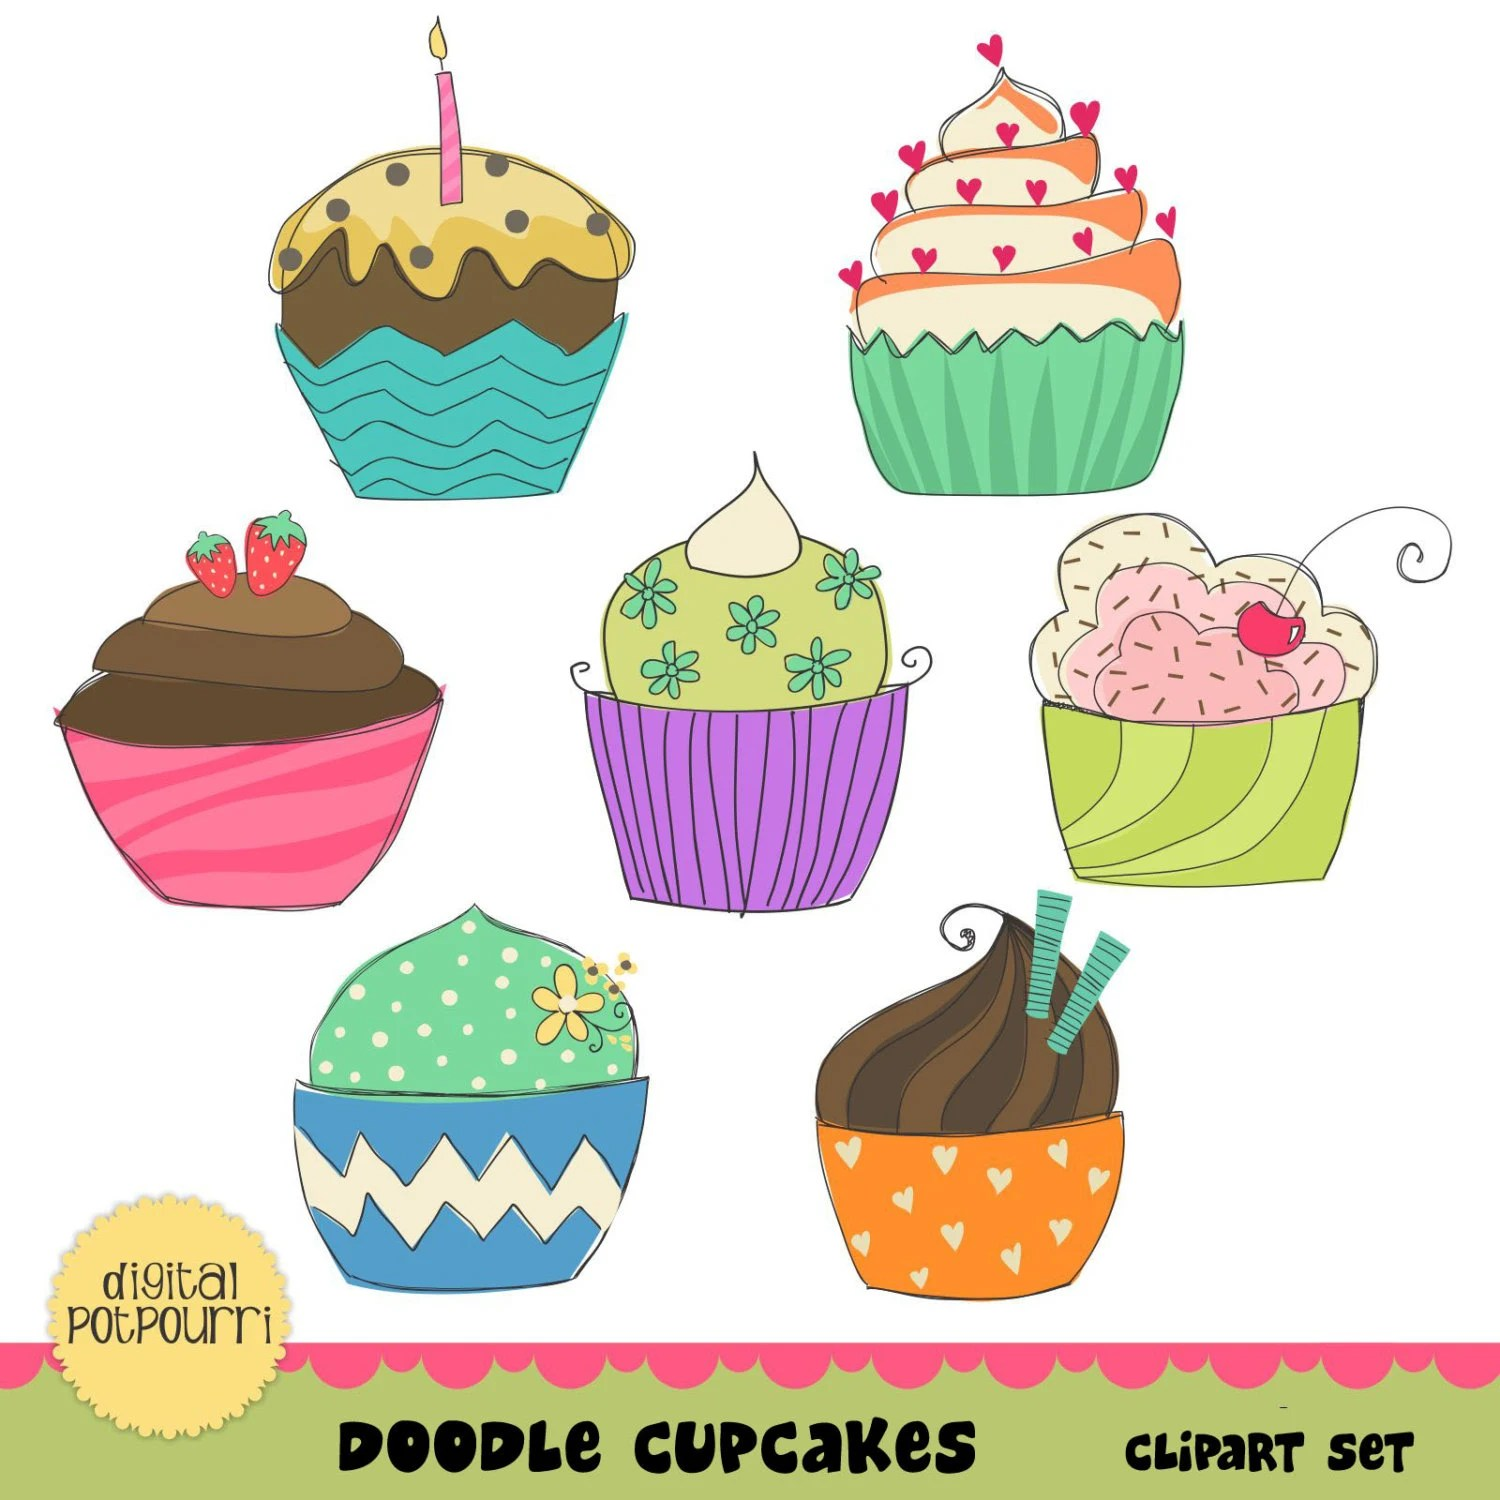 Buy2get1 Cupcakes Clipart Set Doodle Cupcakes By